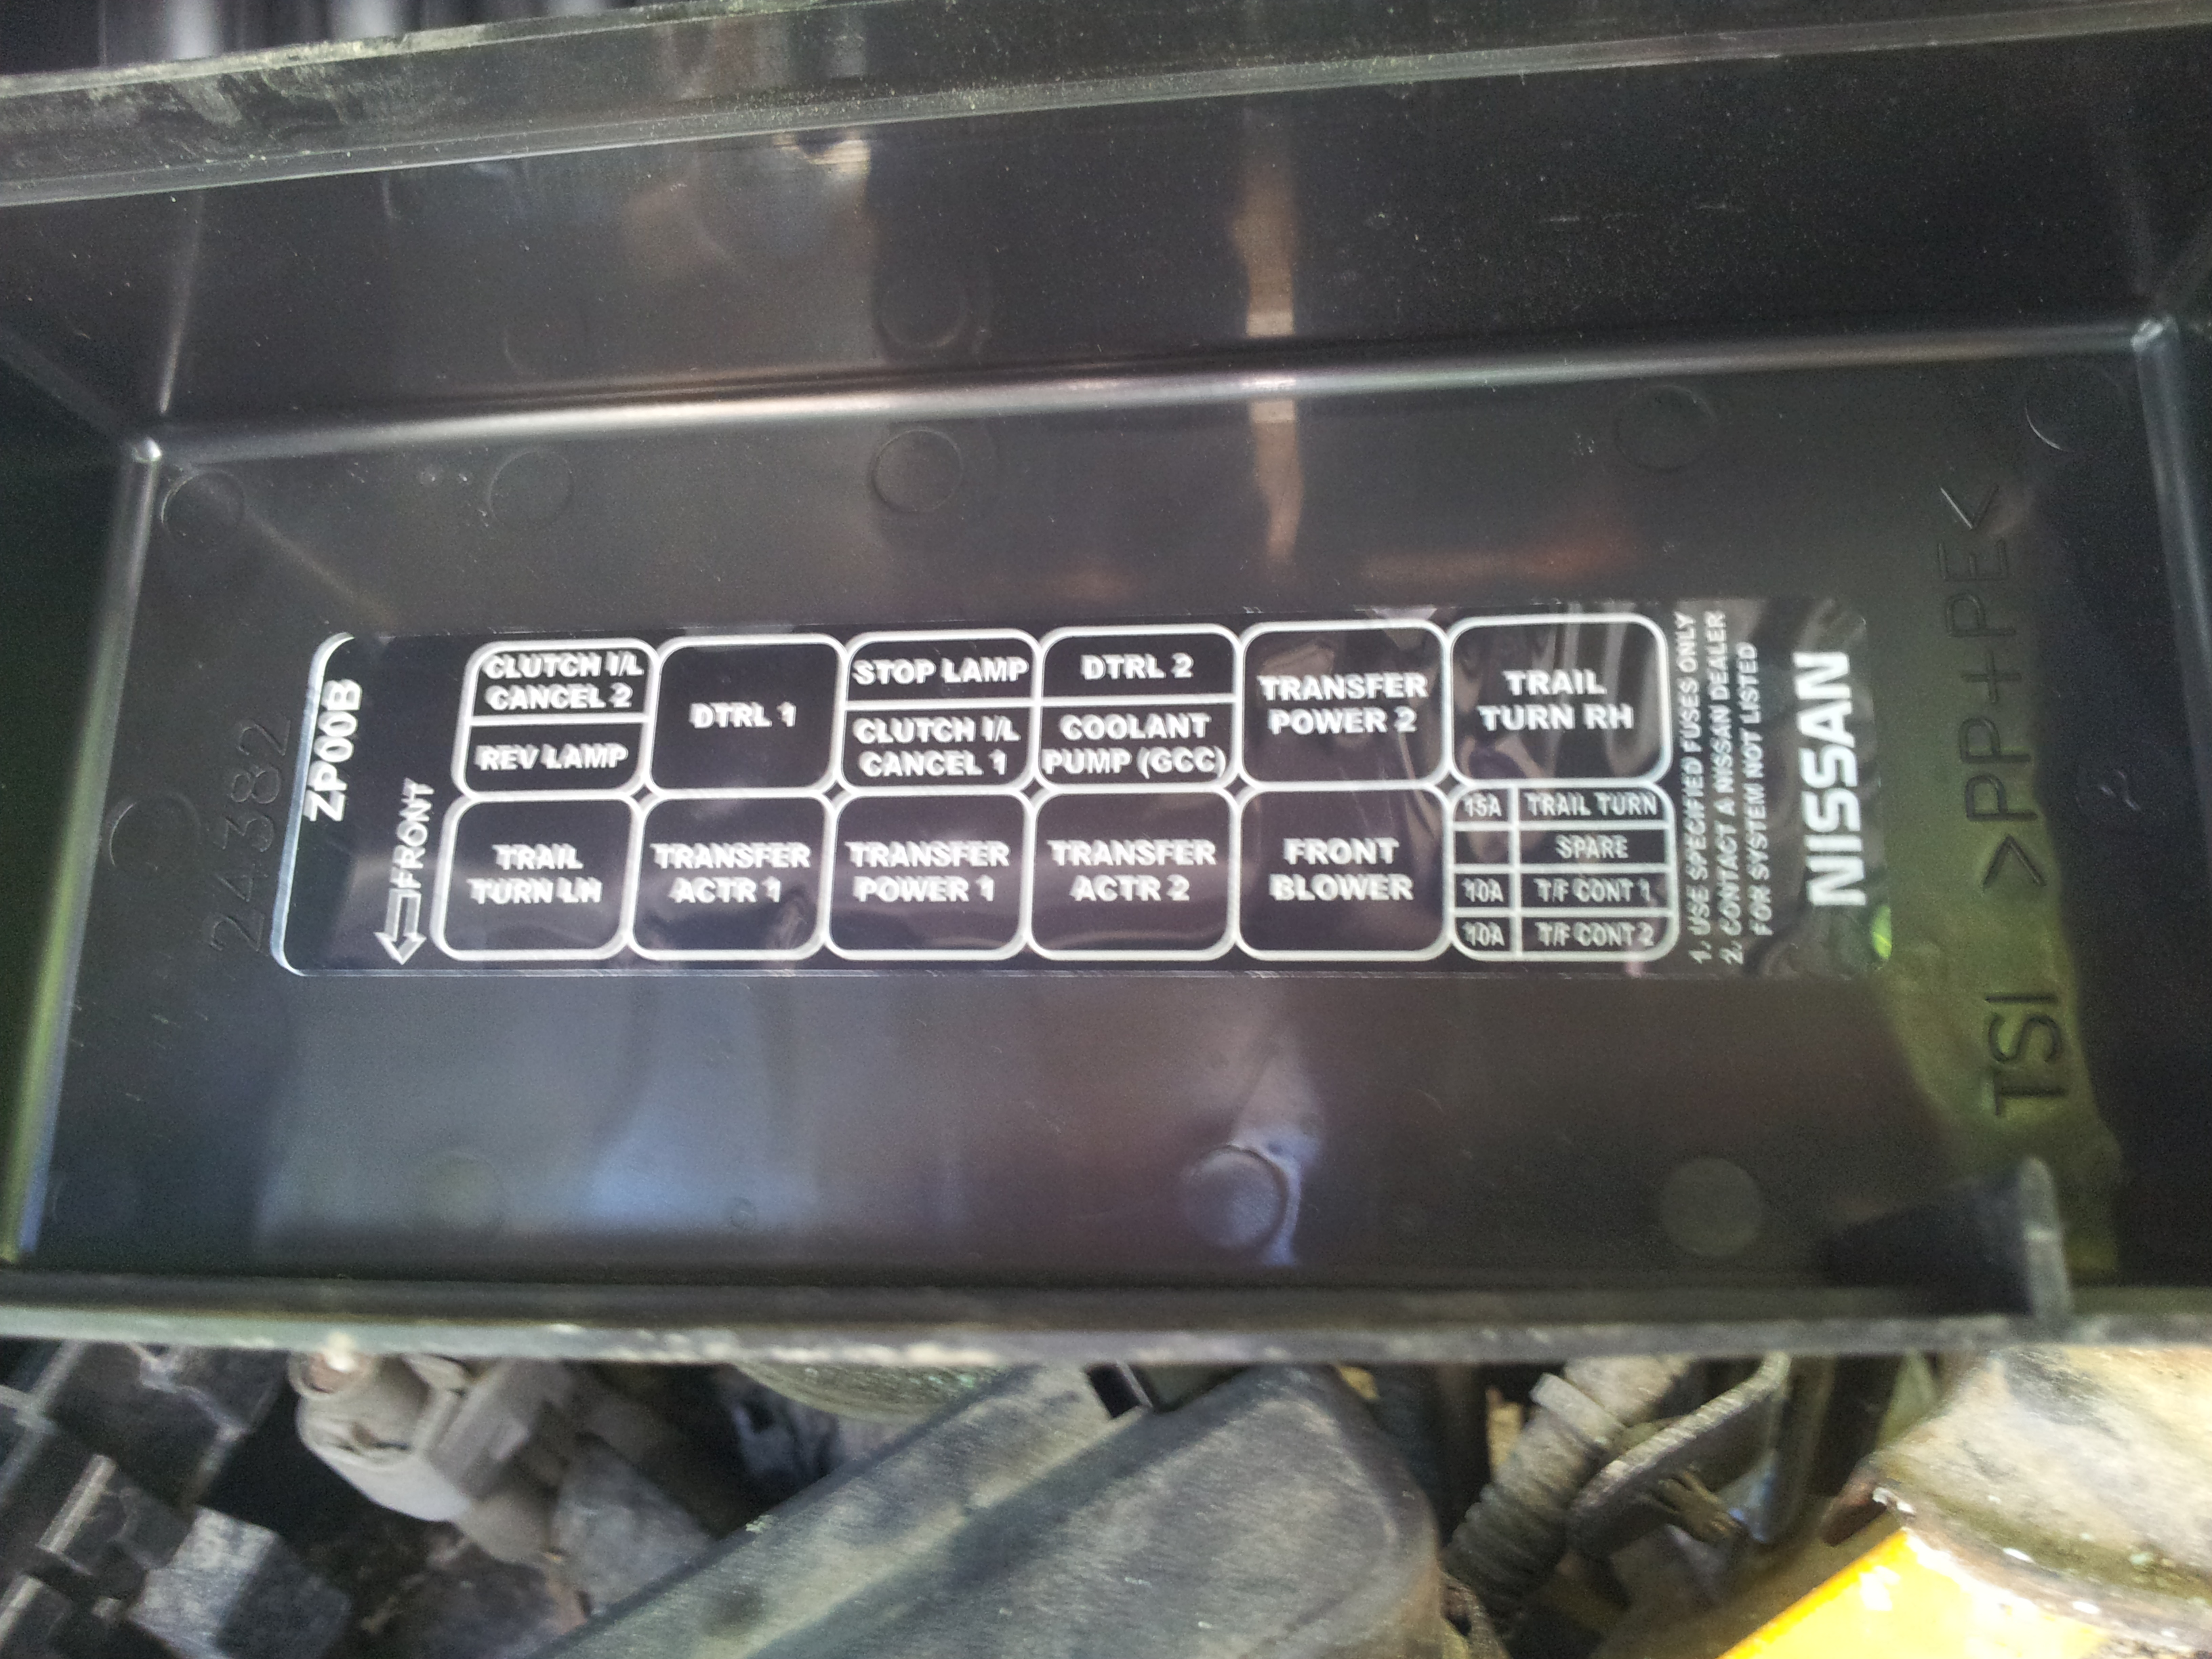 similiar 2007 nissan frontier fuse box keywords nissan frontier clutch interlock relay